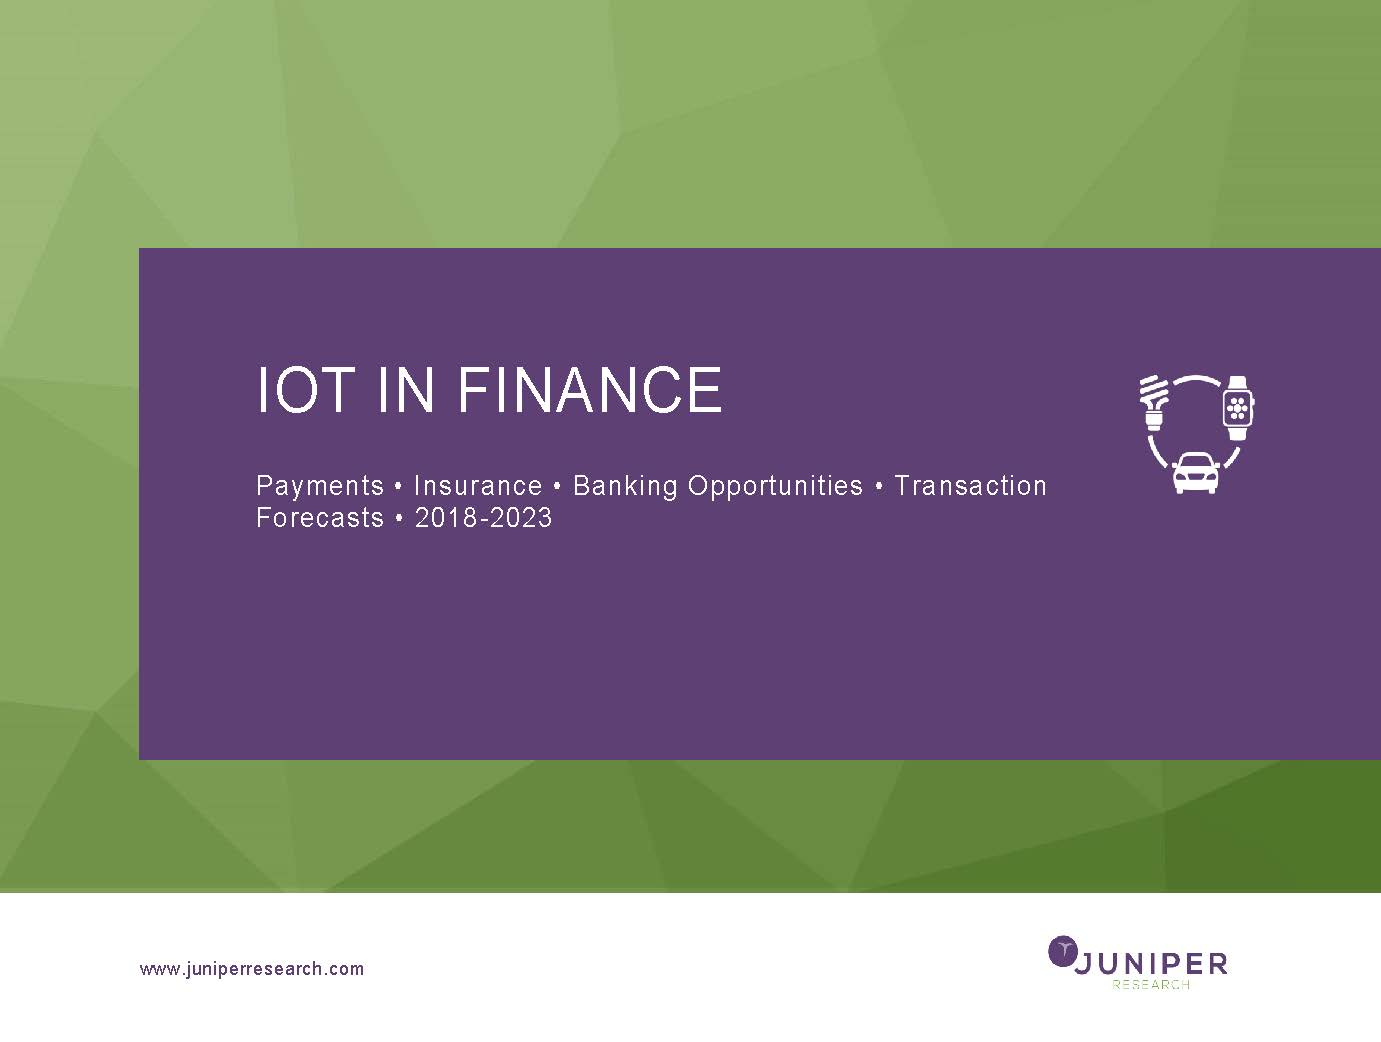 IoT in Finance